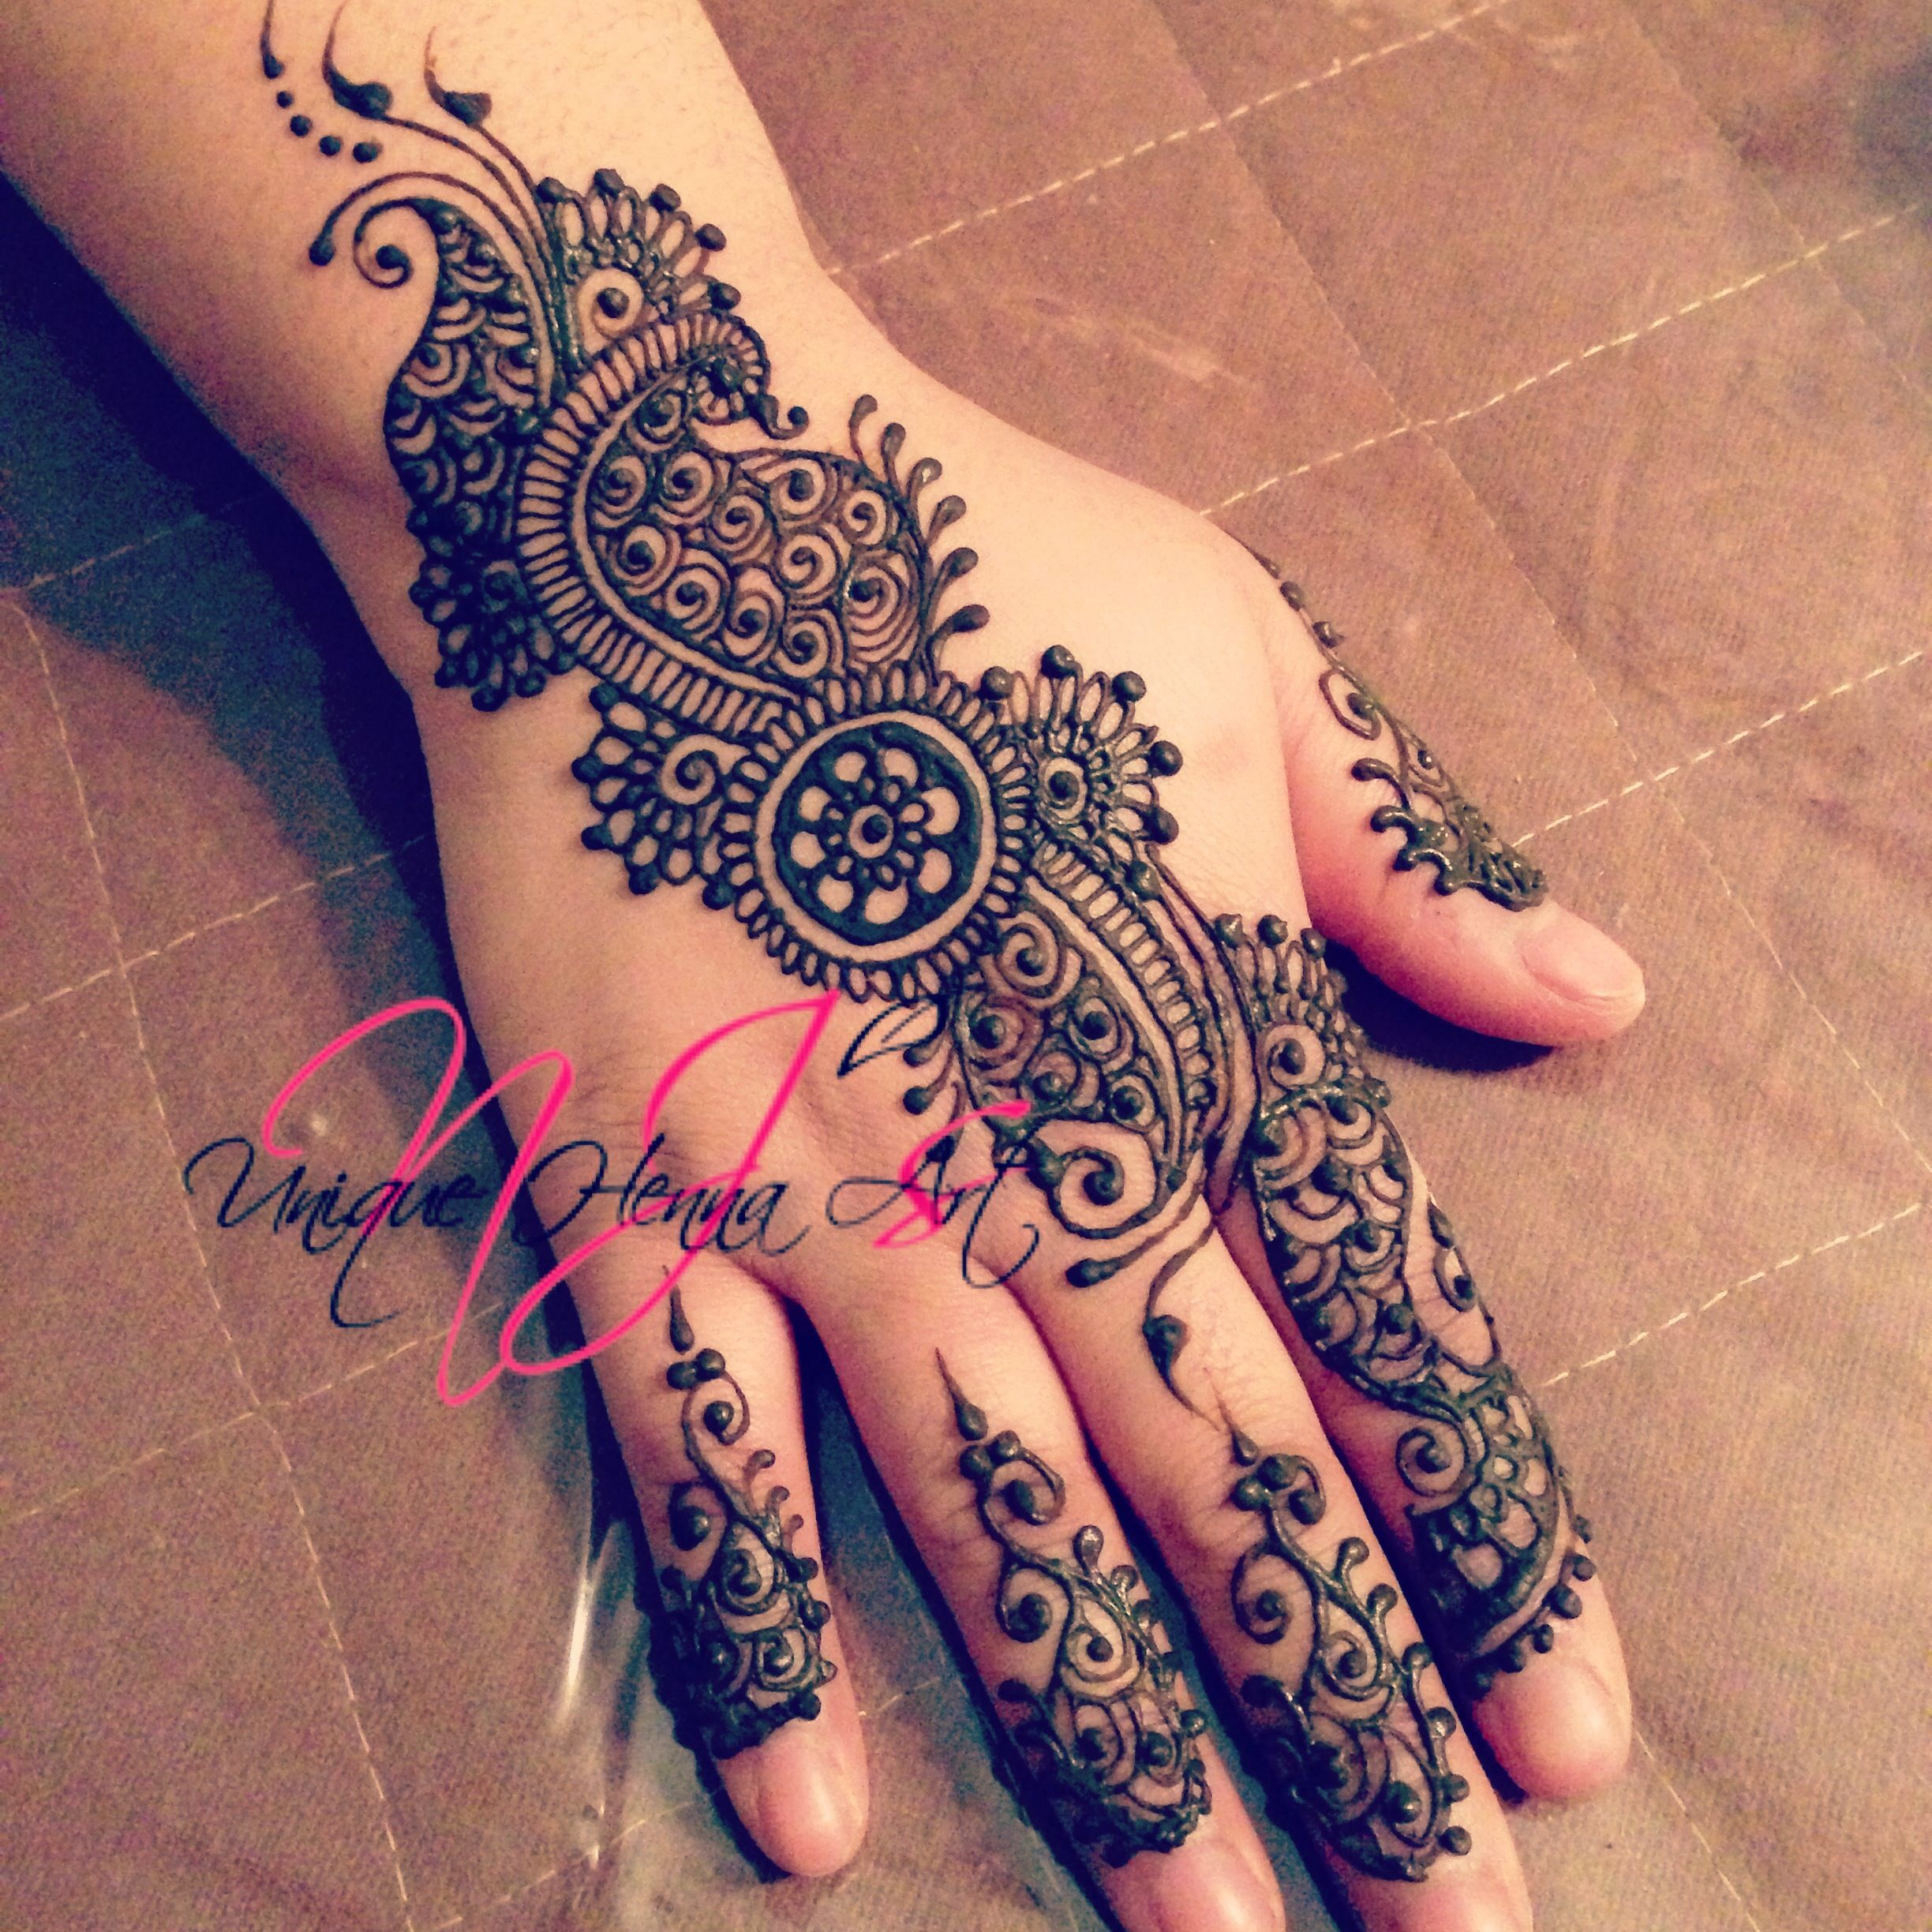 Henna And Tattoo Art: Unique Henna Tattoos - Google Search